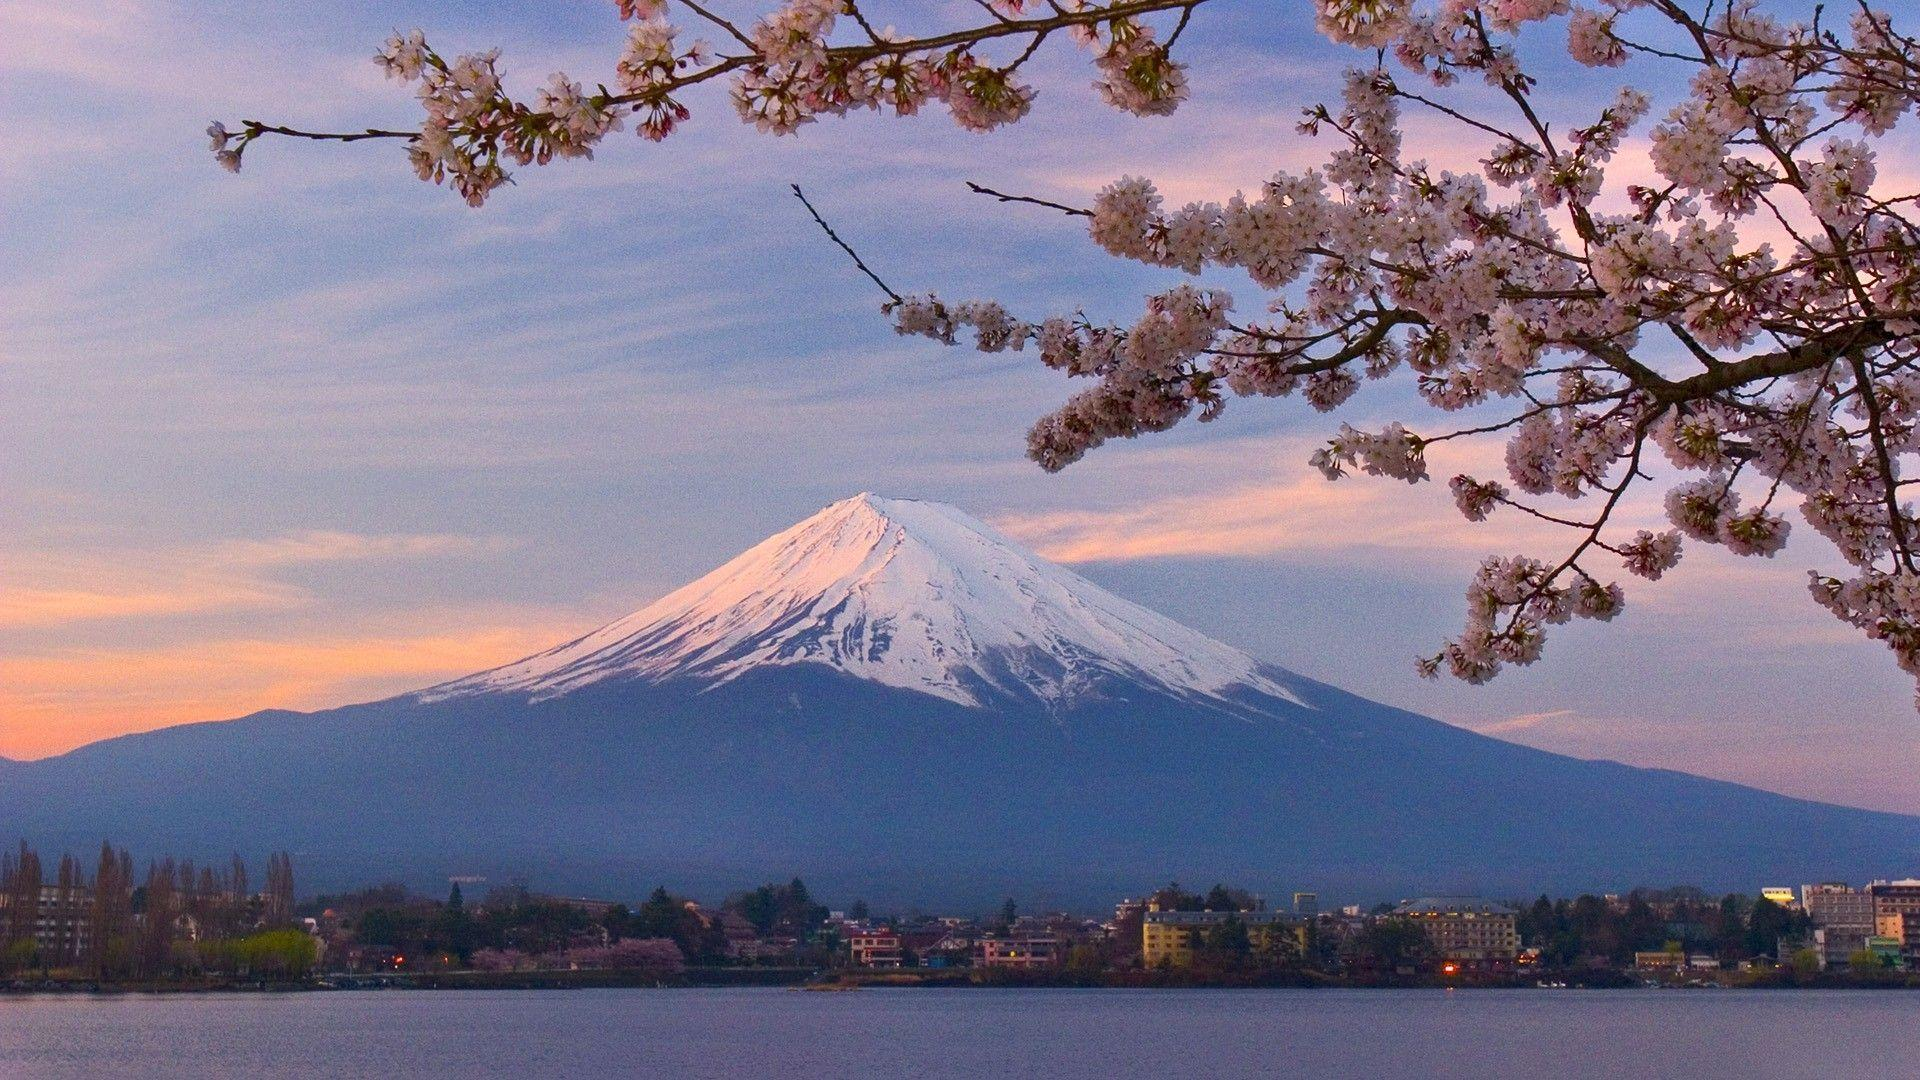 Mount Fuji Hd Wallpapers Wallpaper Cave